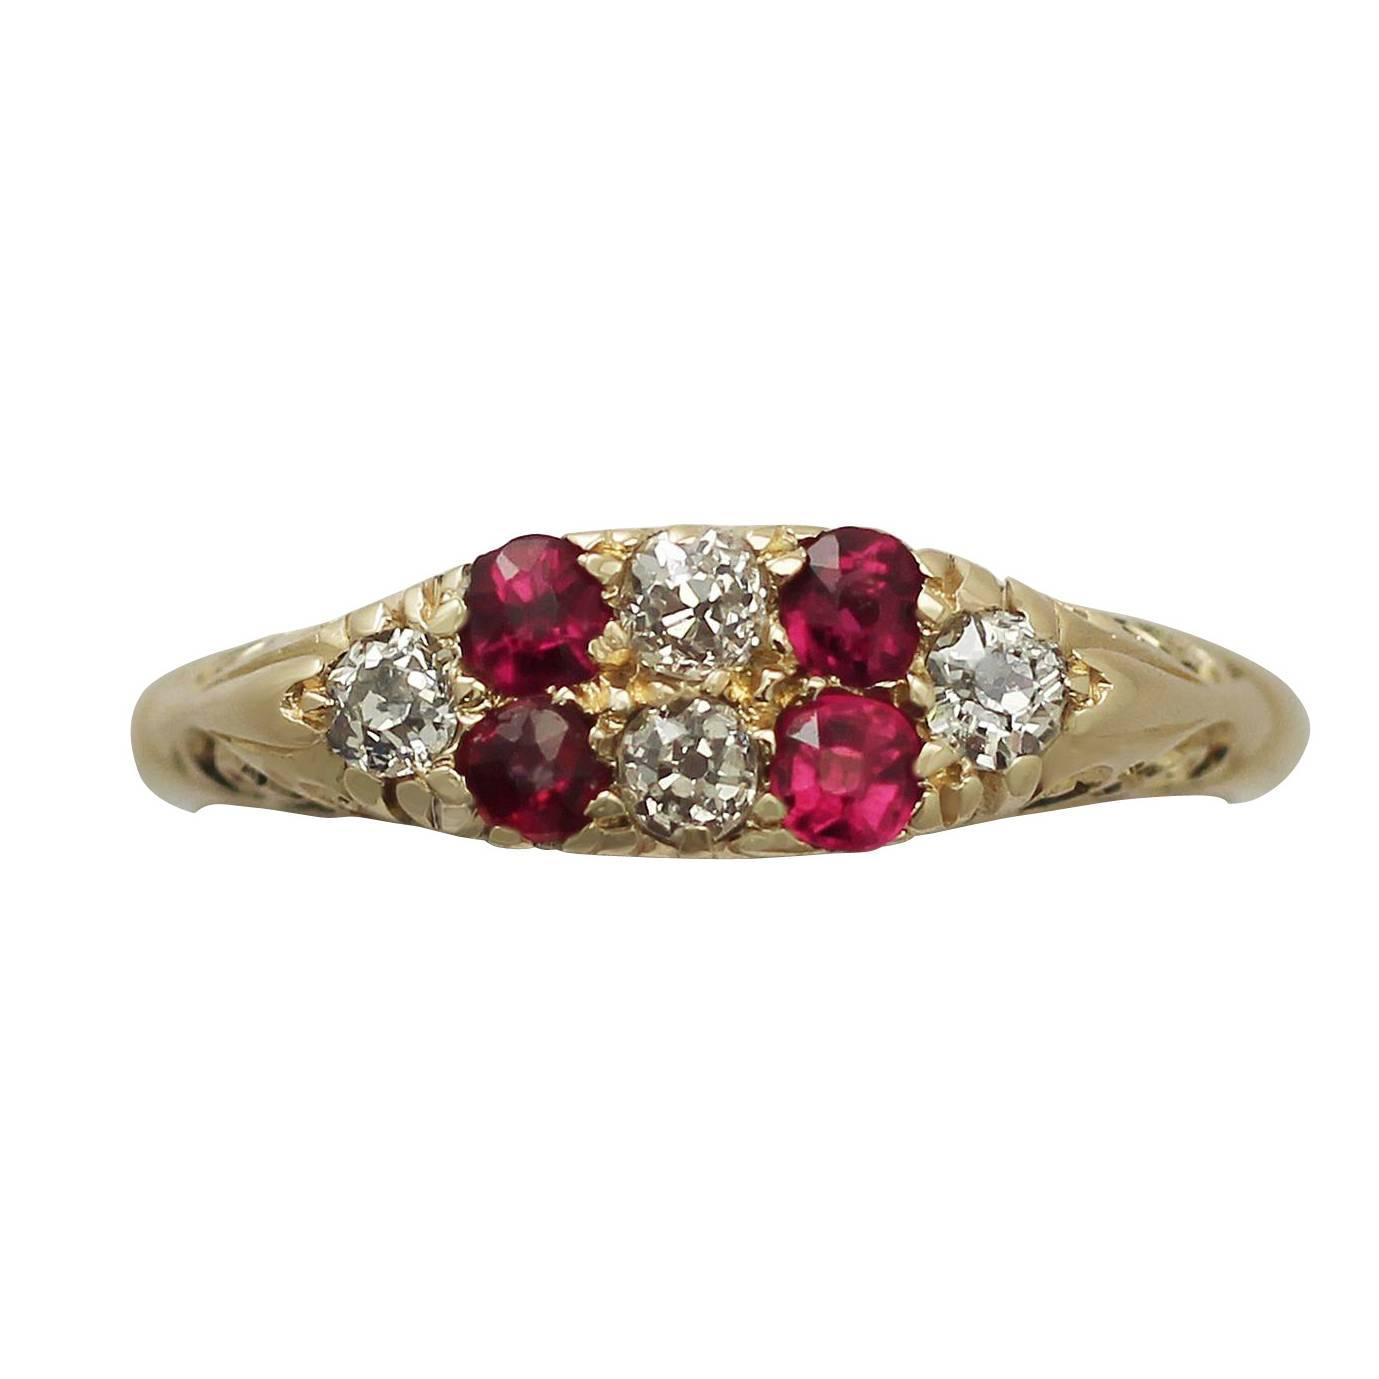 0 16 ct ruby and 0 15 ct 18k yellow gold dress